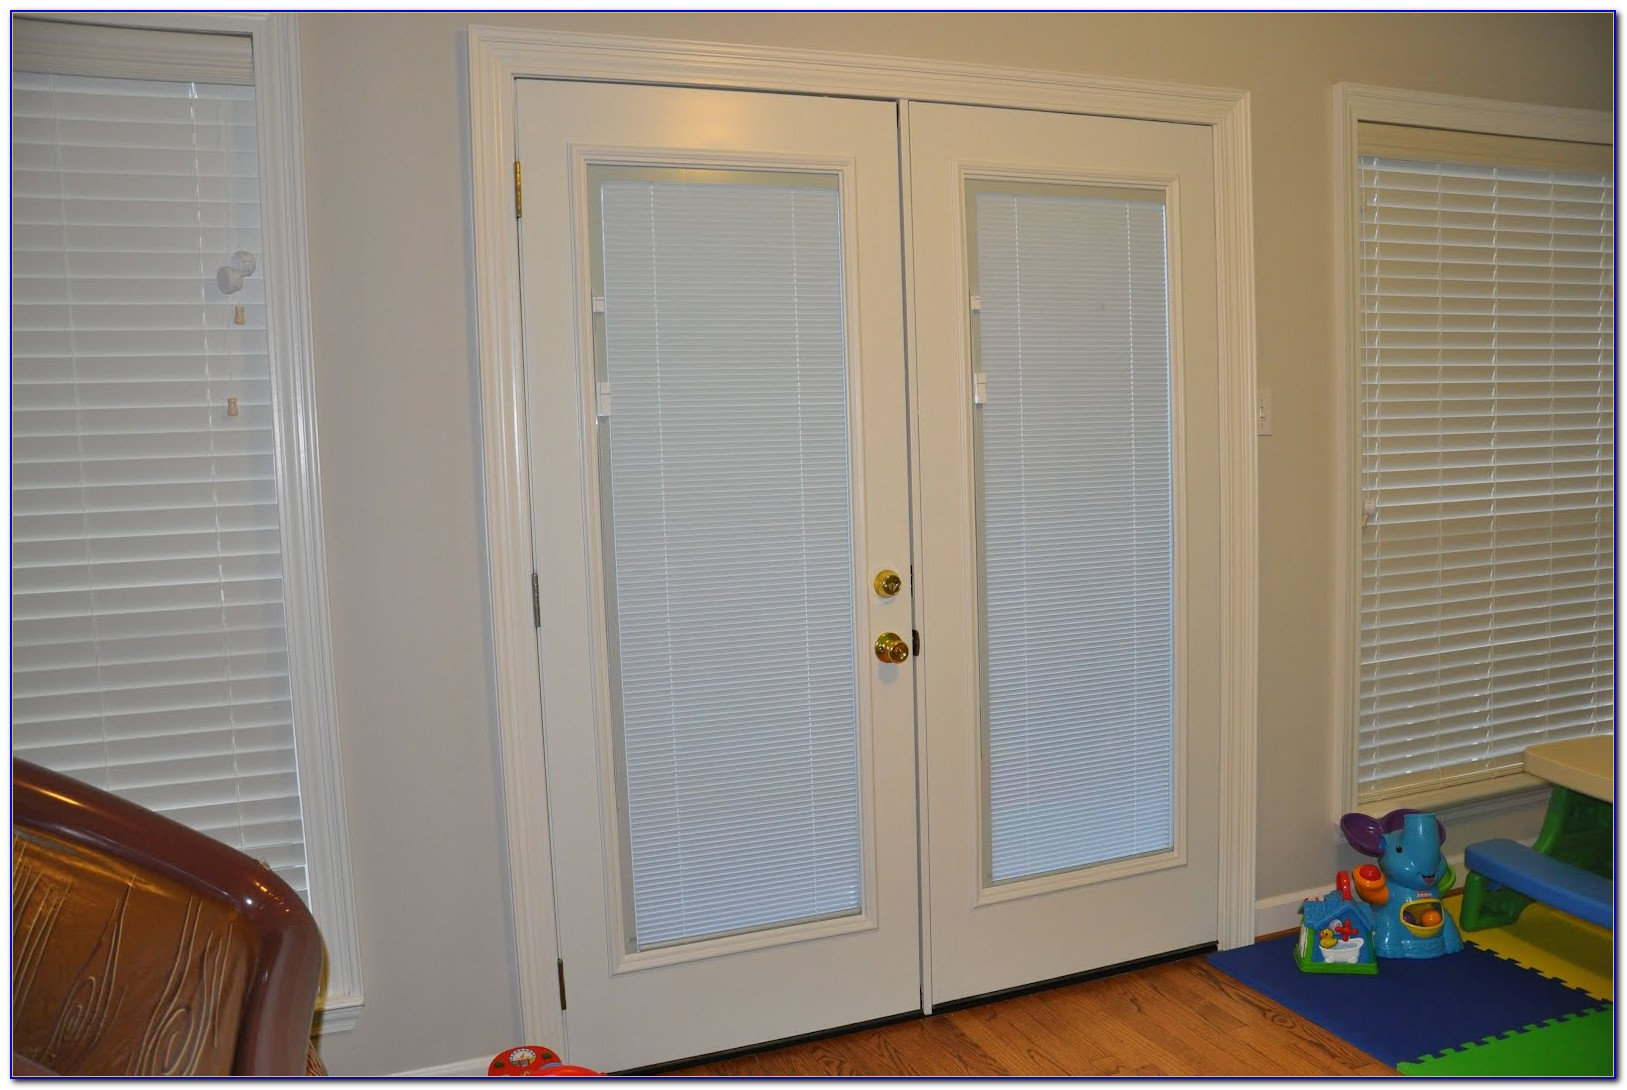 Patio Doors With Blinds Inside The Glass